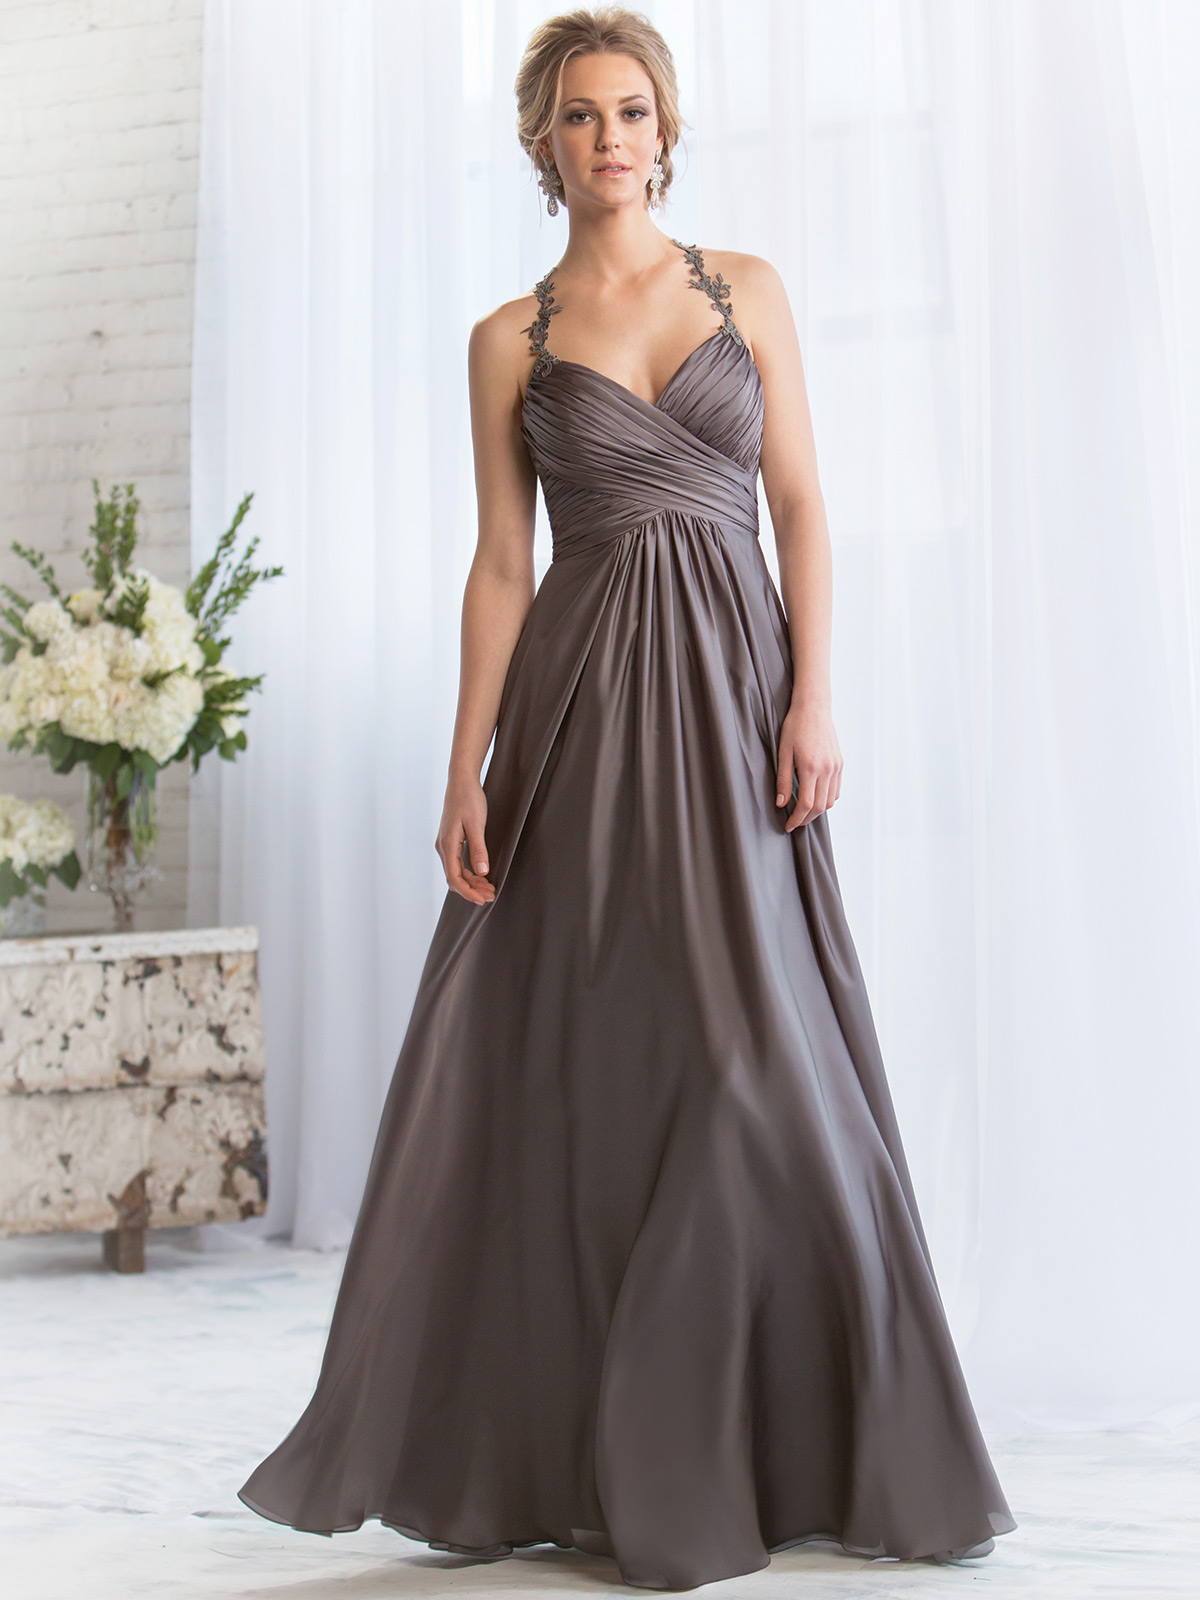 Belsoie Bridesmaid Dress L164069: DimitraDesigns.com